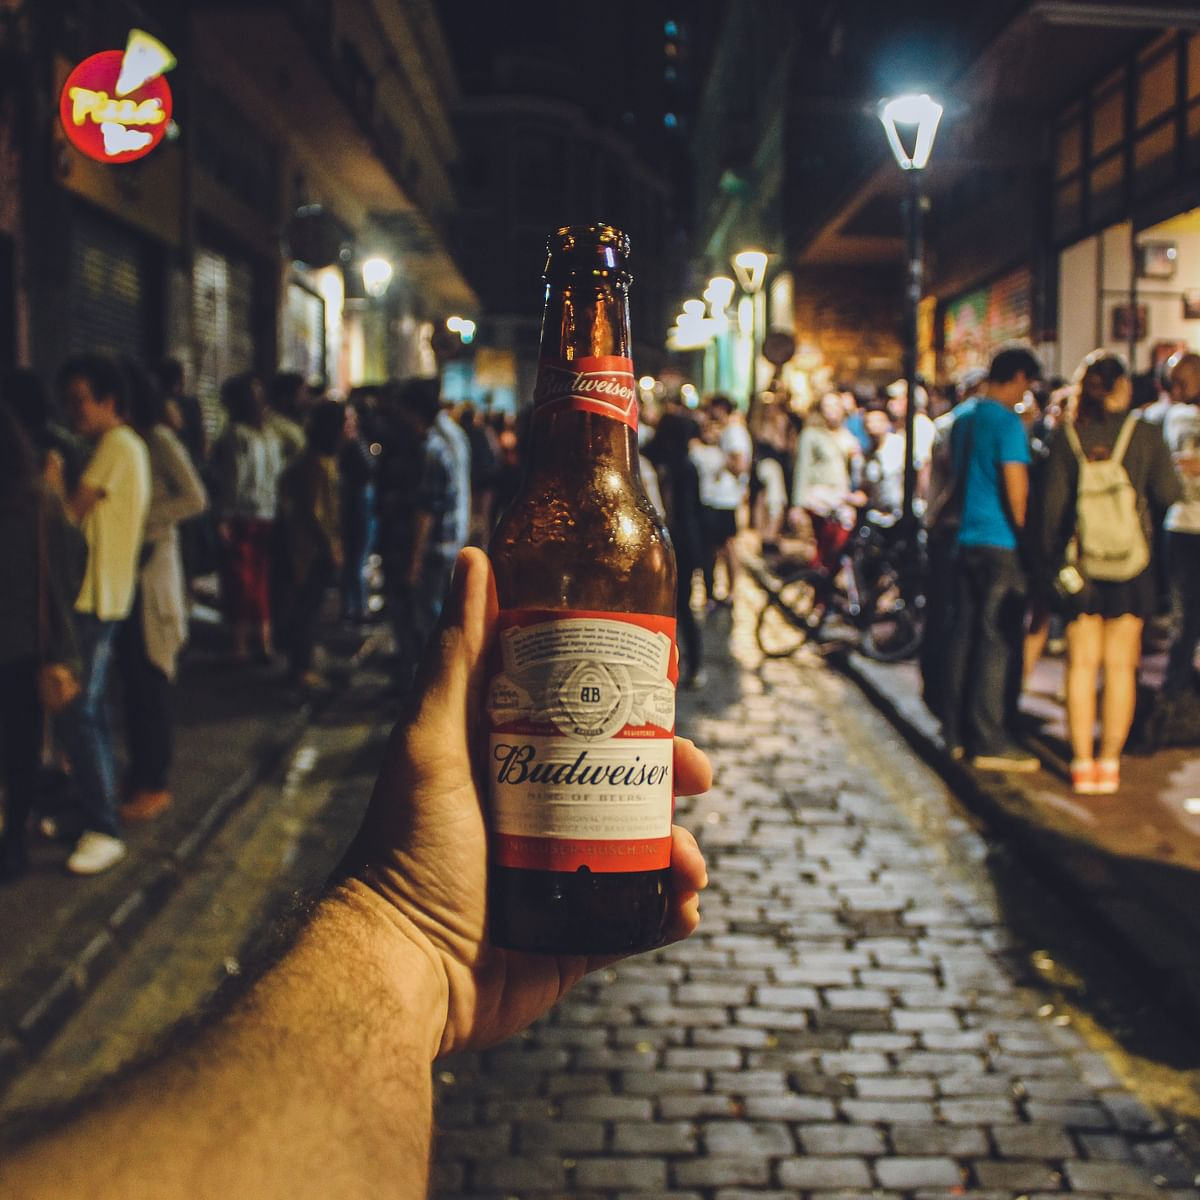 Budweiser - how many calories are there in one bottle?